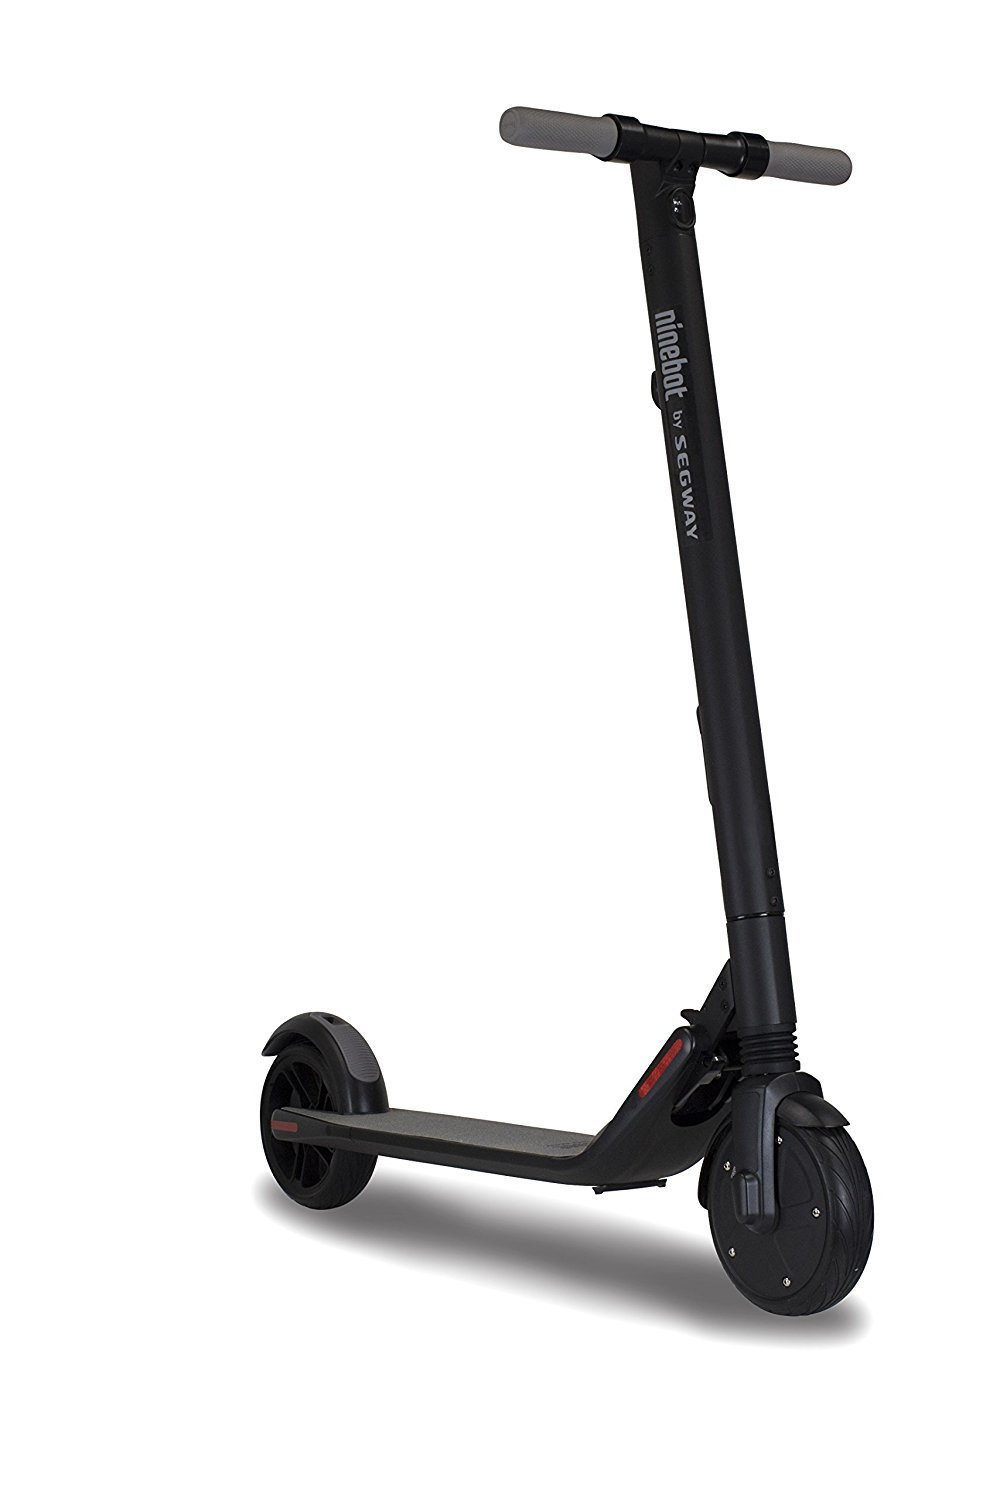 Segway Electric KickScooter Foldable Commuter Scooter, 12 Mile Range, 15.5 mph Top Speed, Cruise Control, Bluetooth Mobile App Connectivity for Adults and Kids(Scooter ES1)